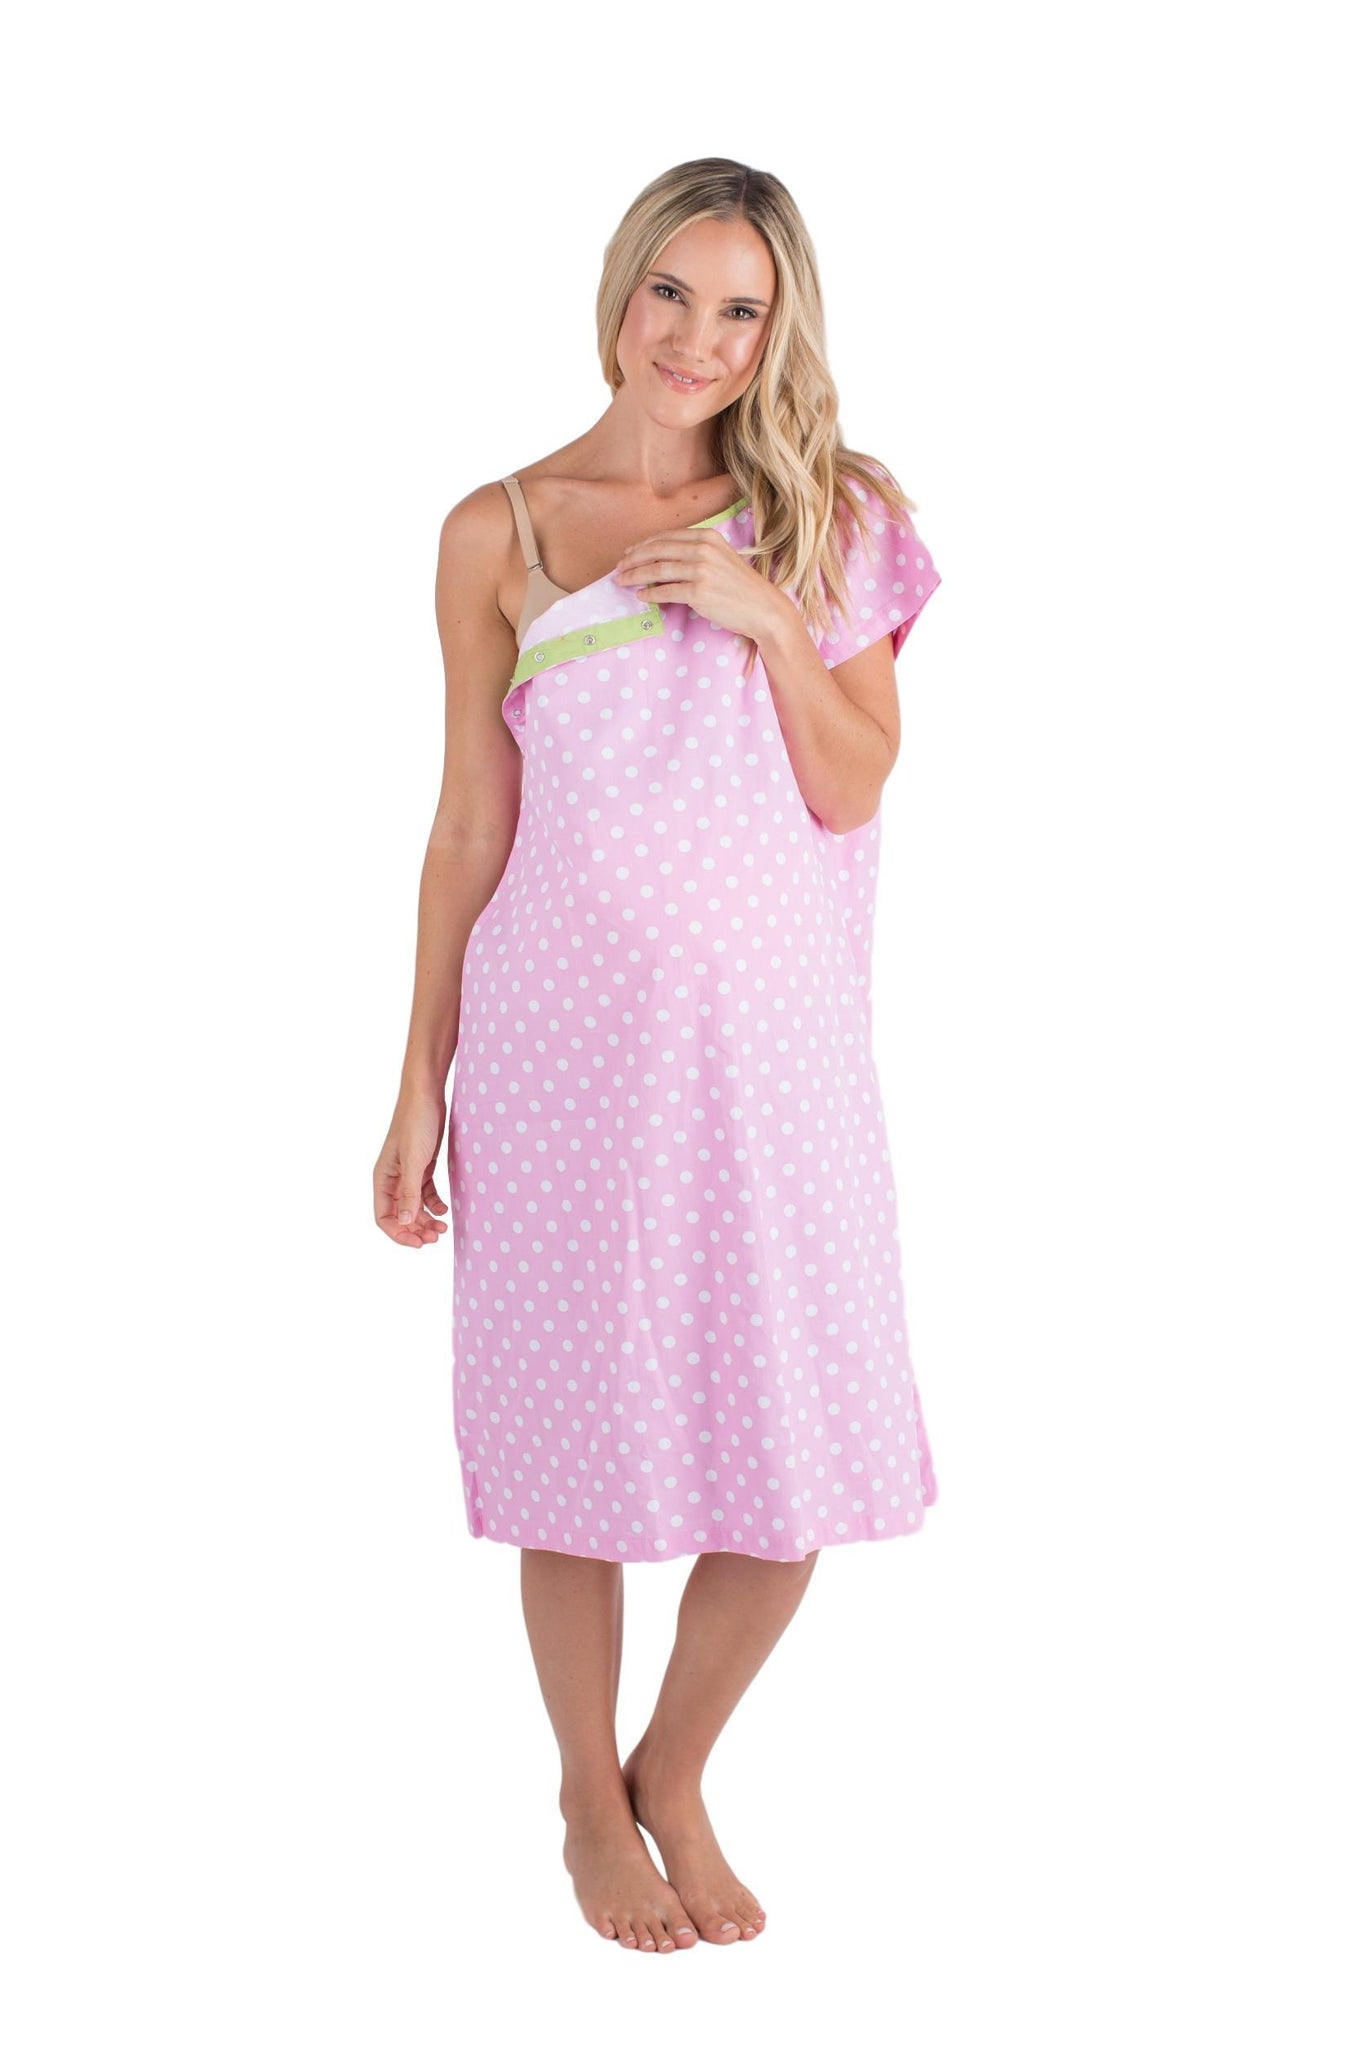 Molly Gownie Maternity Delivery Labor Hospital Birthing Gown – Gownies